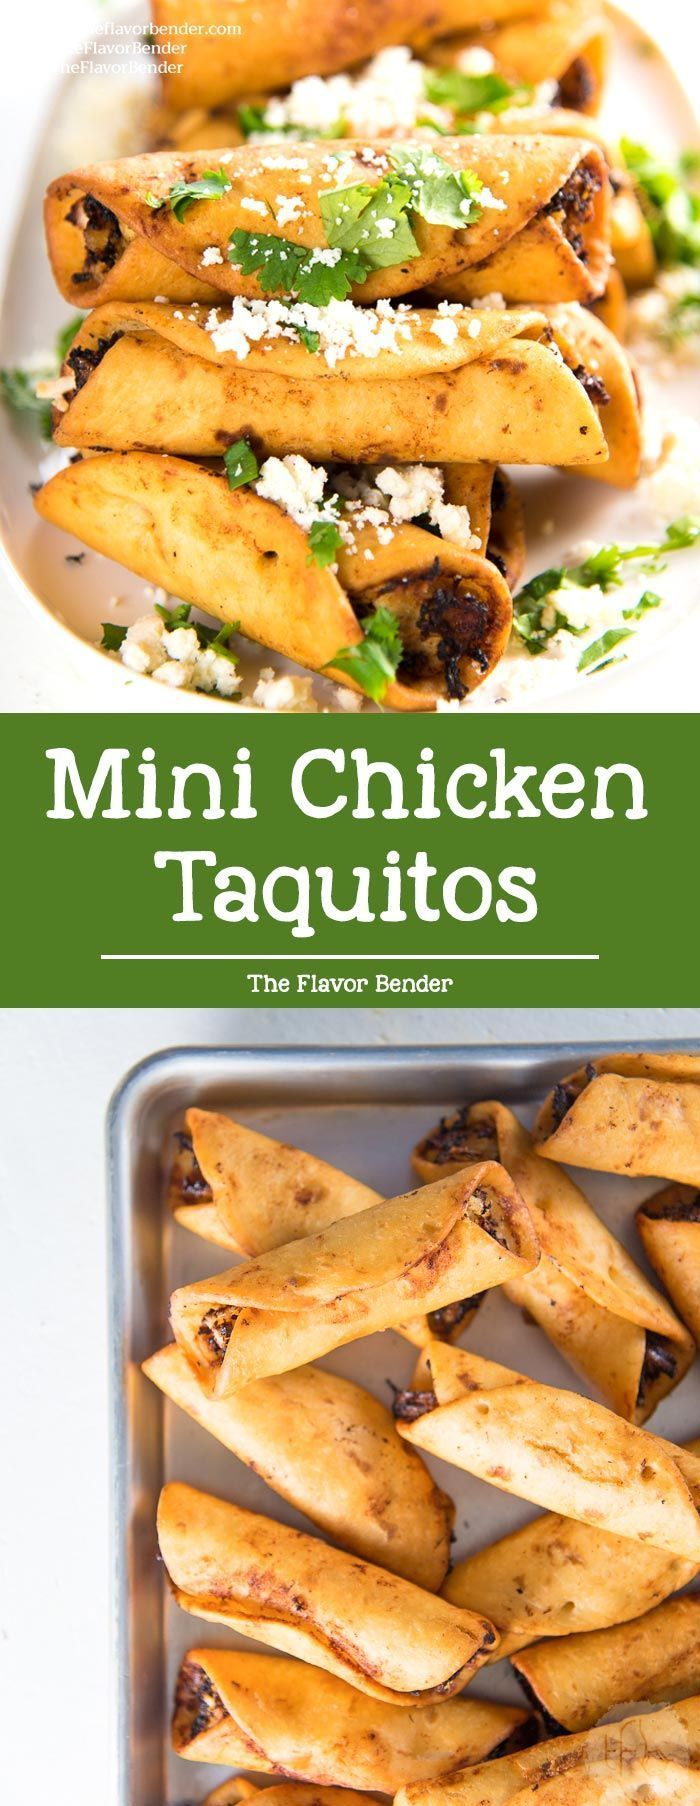 Chicken Taquitos - Crispy mini taquitos filled with a creamy, tangy chicken and cheese filling, perfect as appetizers for any party. Make these as a snack, appetizer or even as a meal. #MexicanRecipes via @TheFlavorBender